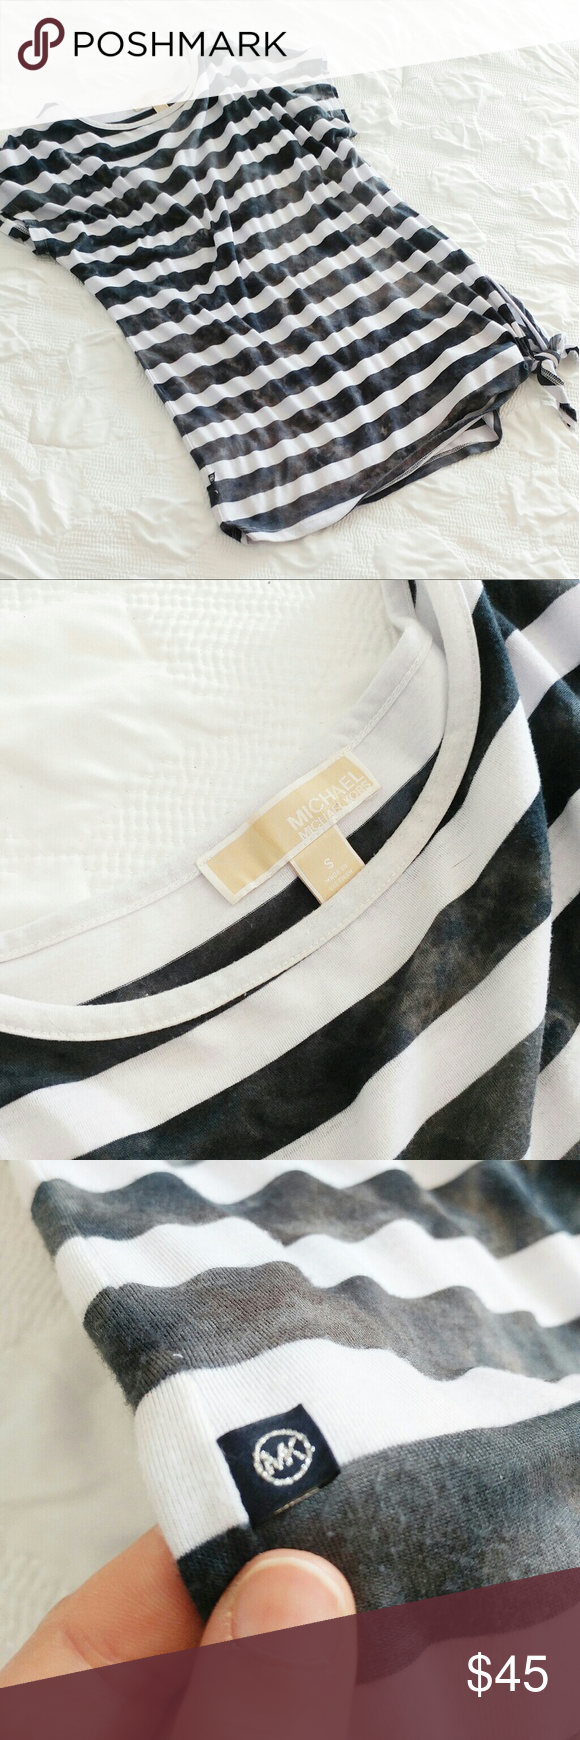 Michael Kors Top White and black shibori stripes with a tie side.  This is a small but it is meant to be very oversized and flowy. Michael Kors Tops Tees - Short Sleeve